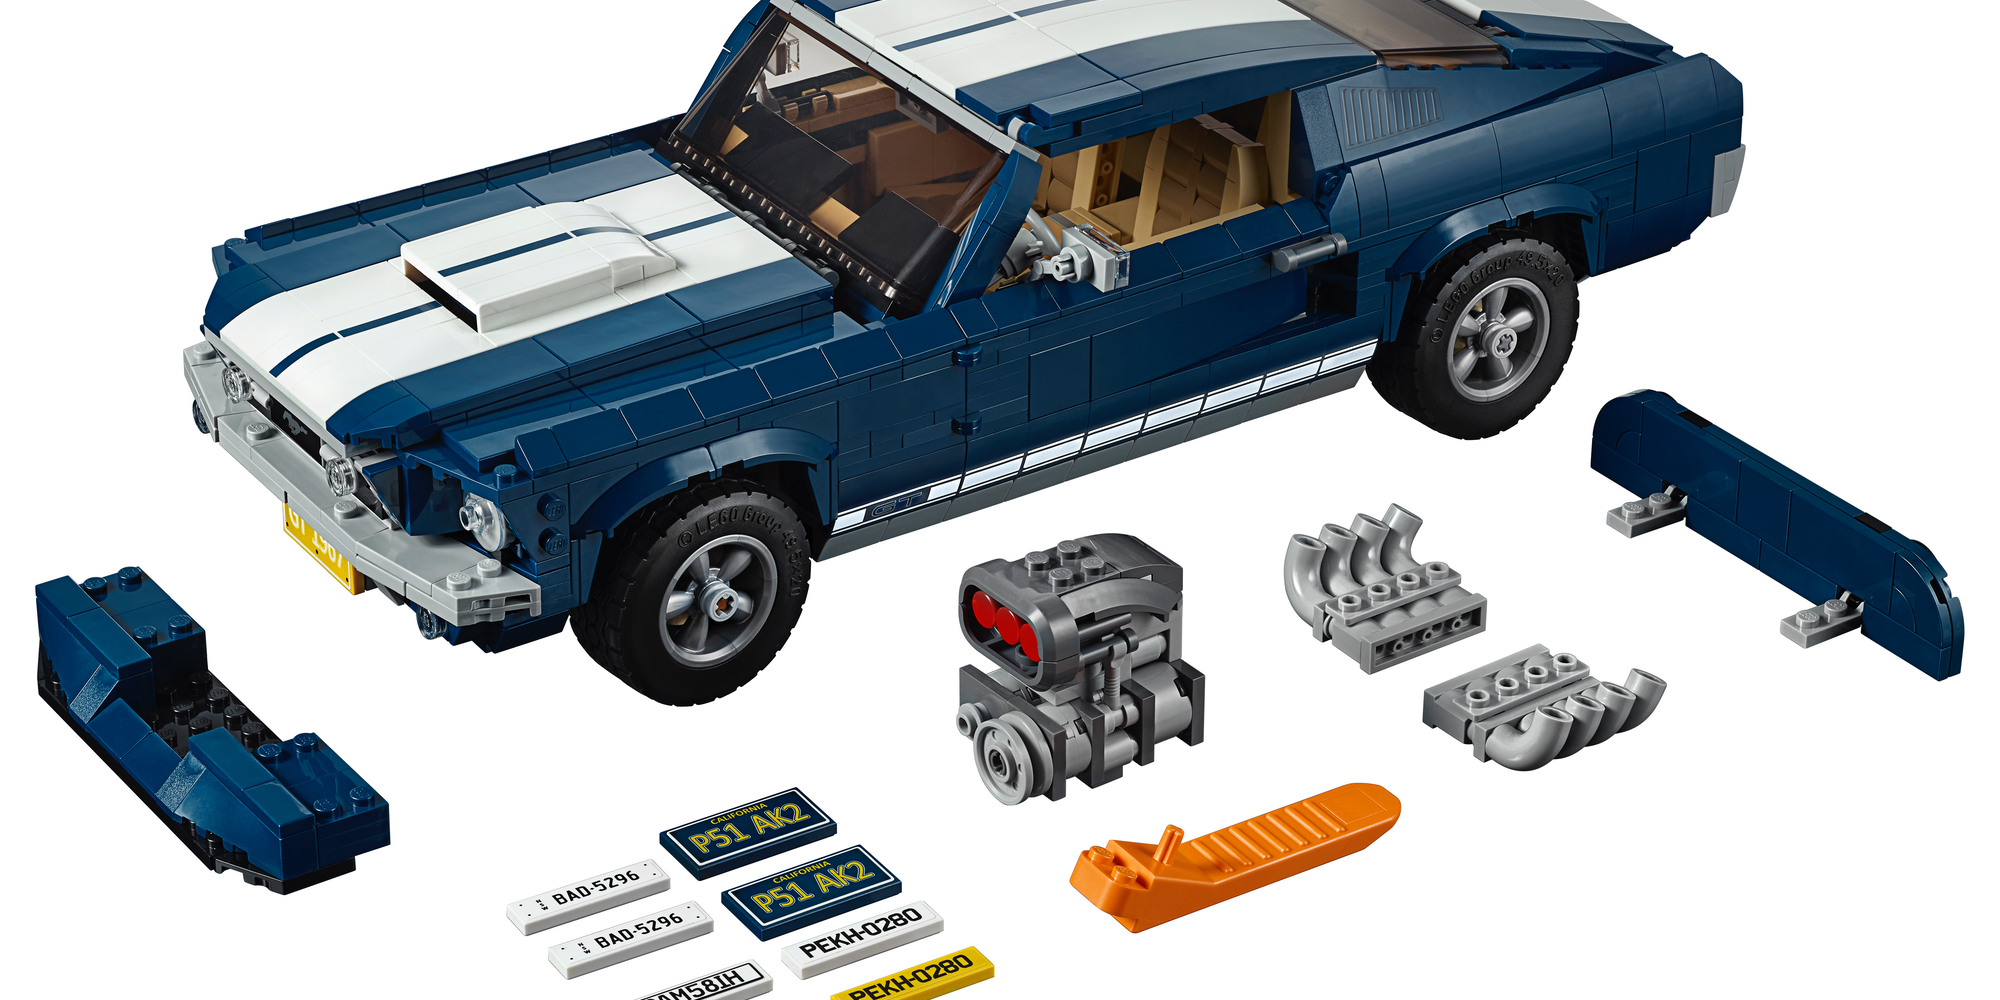 LEGO Ford Mustang Accessories